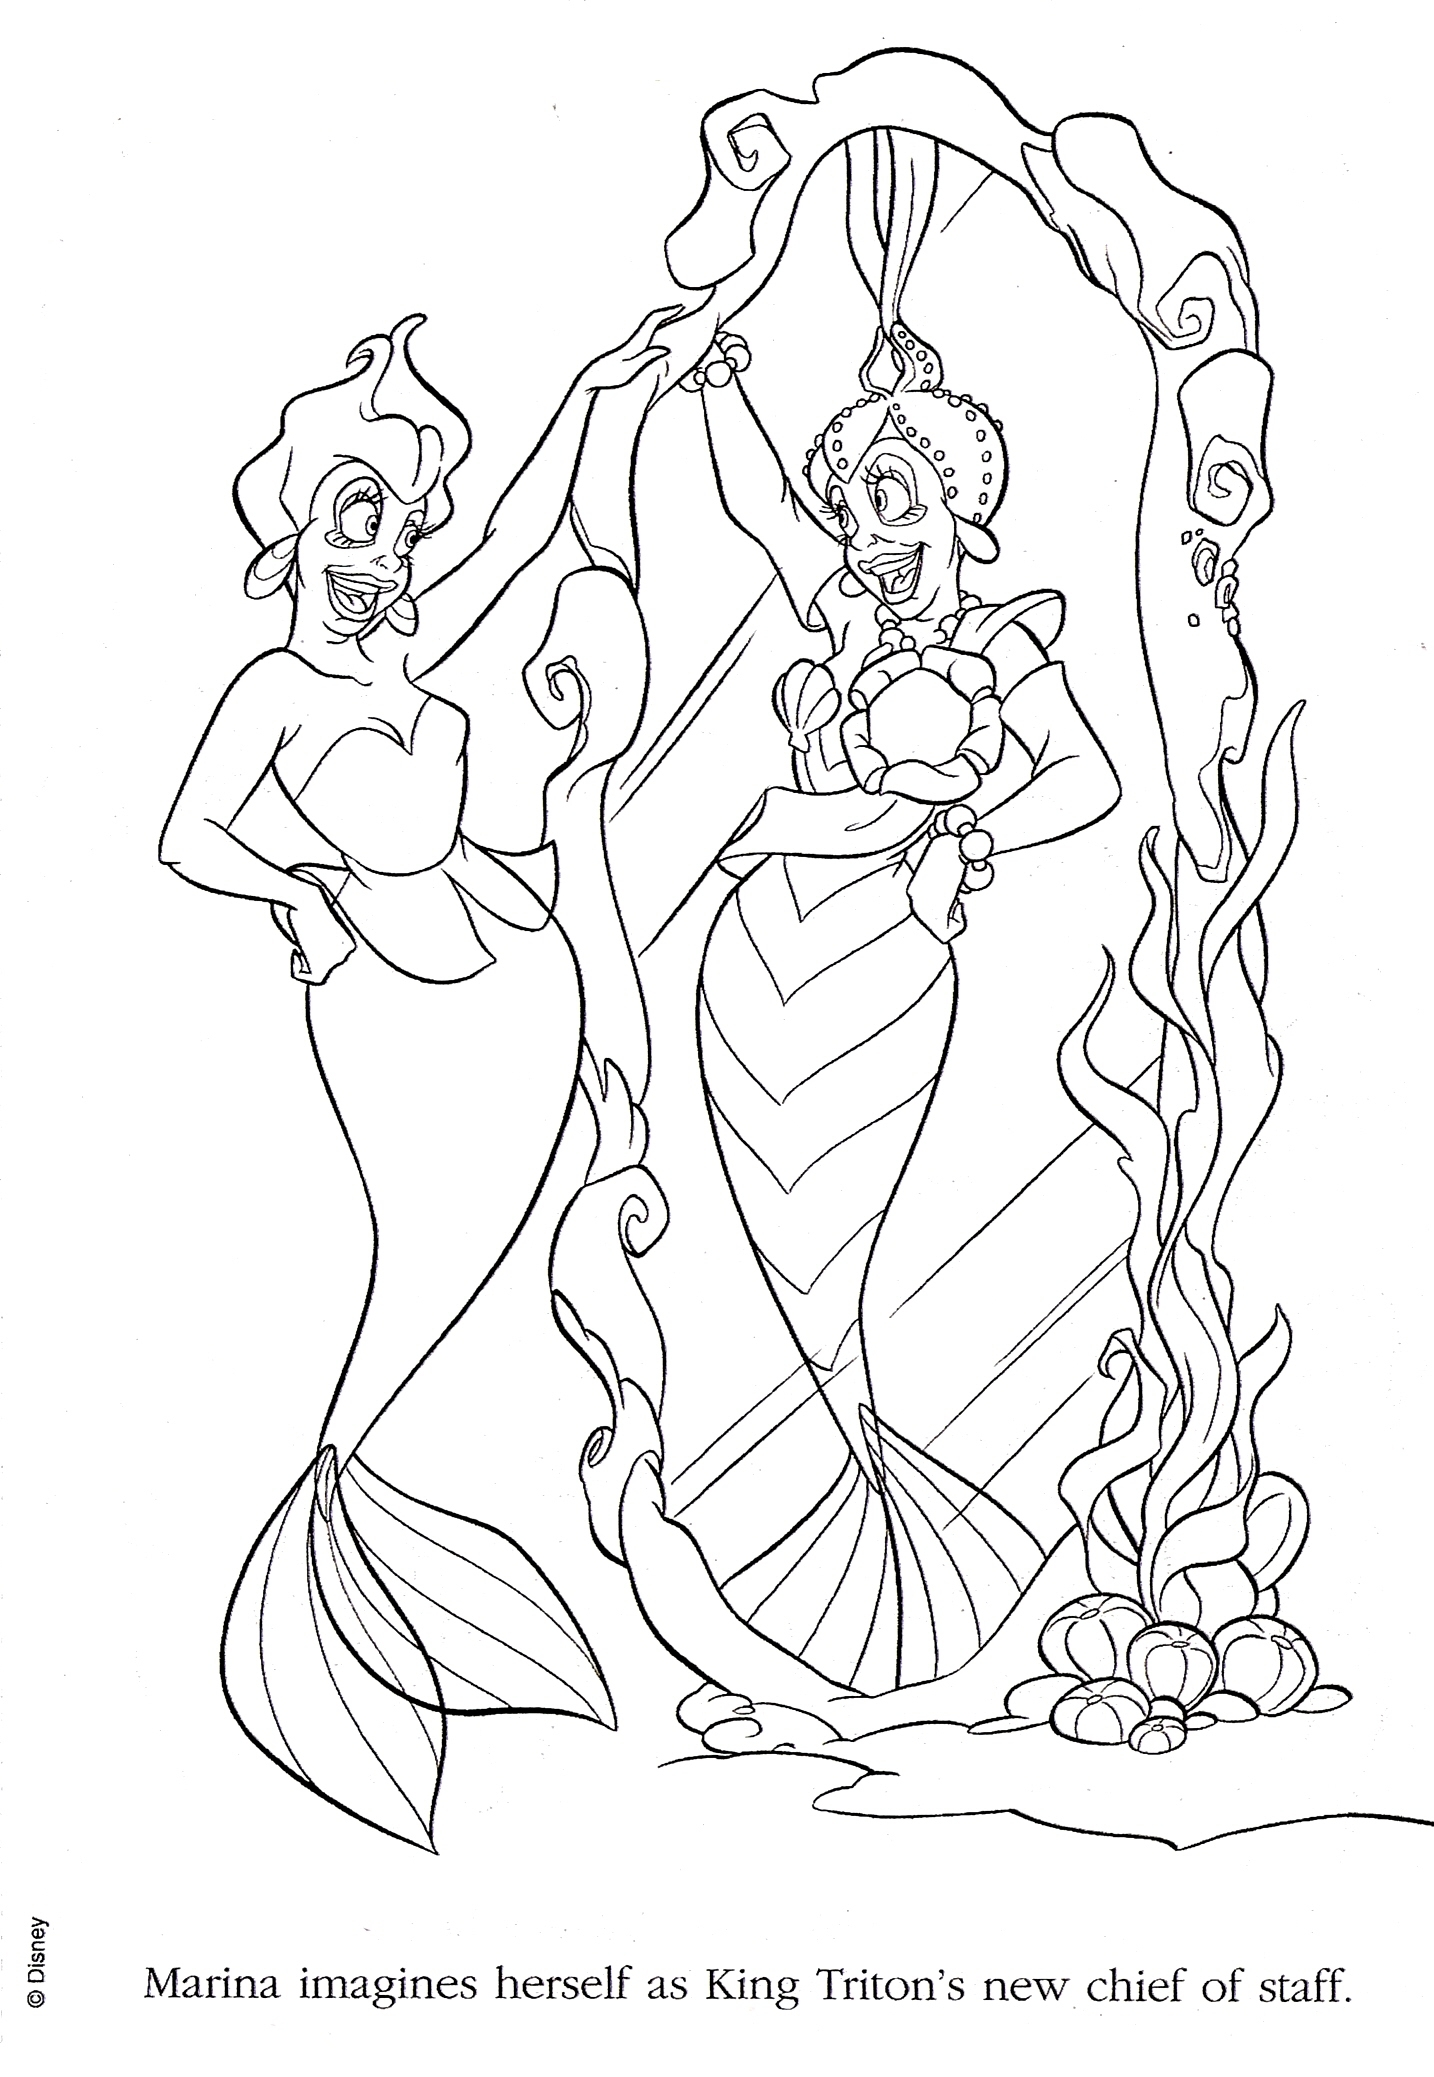 Sleeping with sirens coloring pages sketch coloring page for Sleeping with sirens coloring pages